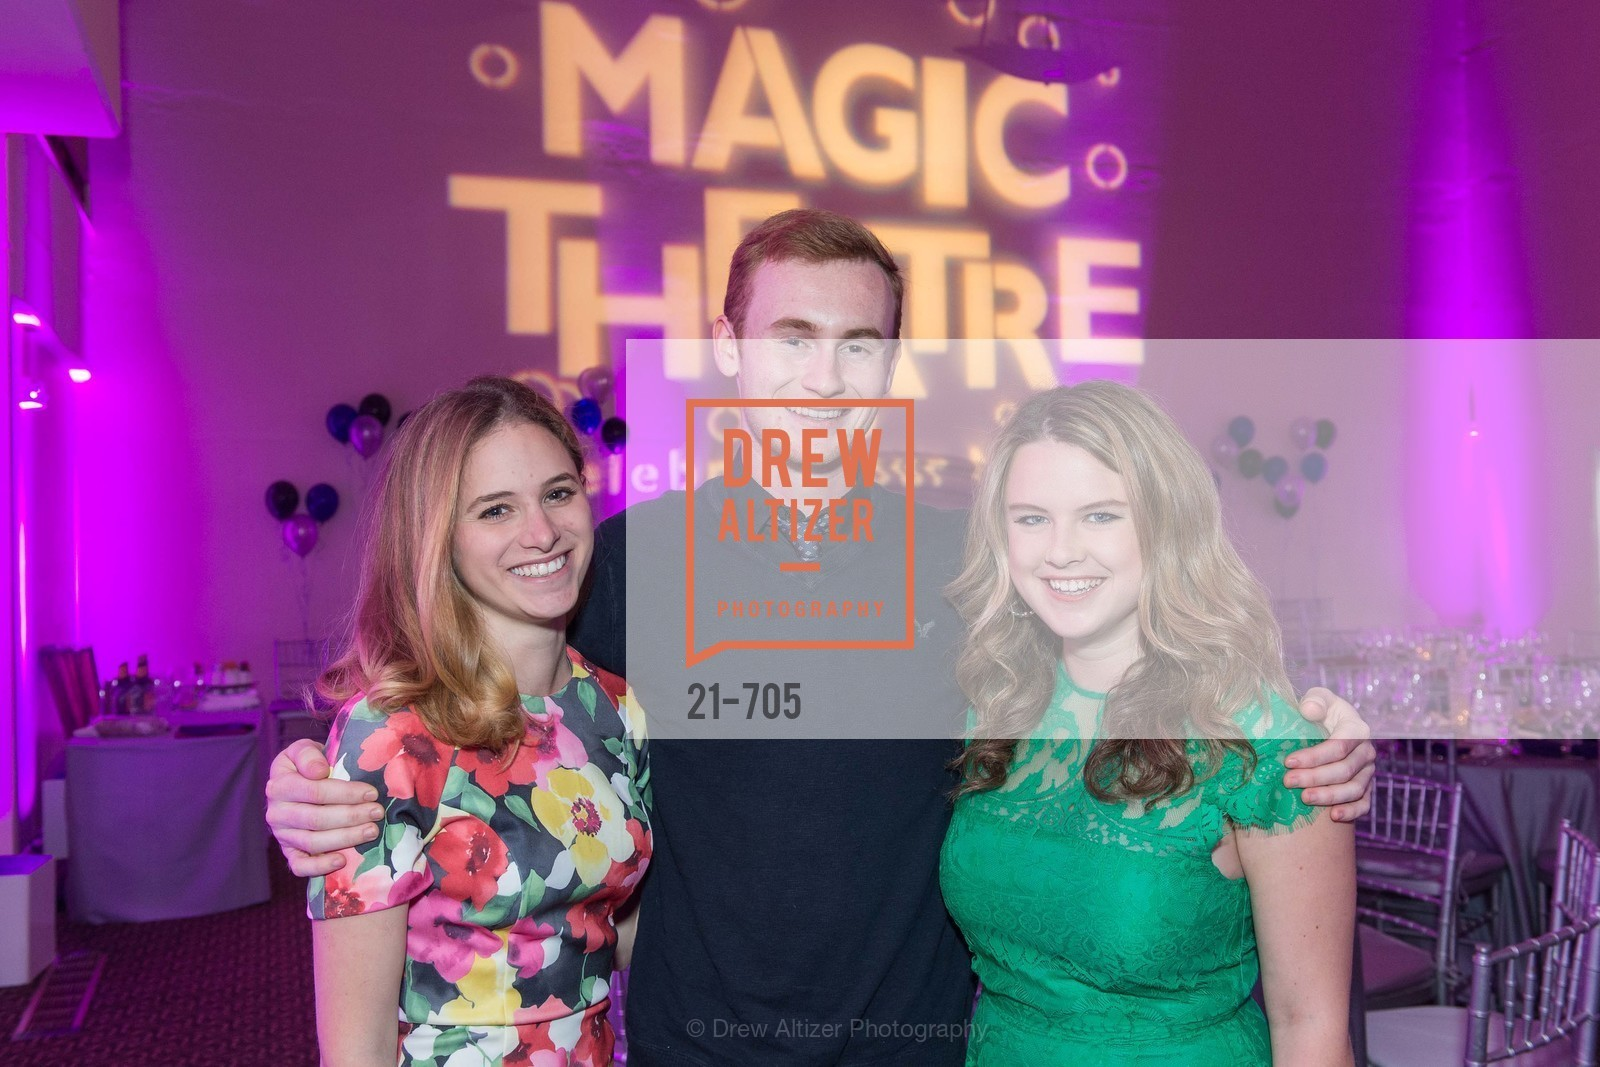 Ellie Sachs, Wyatt Smith, Hilary Flynn, MAGIC THEATRE'S 2015 Gala:  A Night of Magic, US, May 8th, 2015,Drew Altizer, Drew Altizer Photography, full-service agency, private events, San Francisco photographer, photographer california